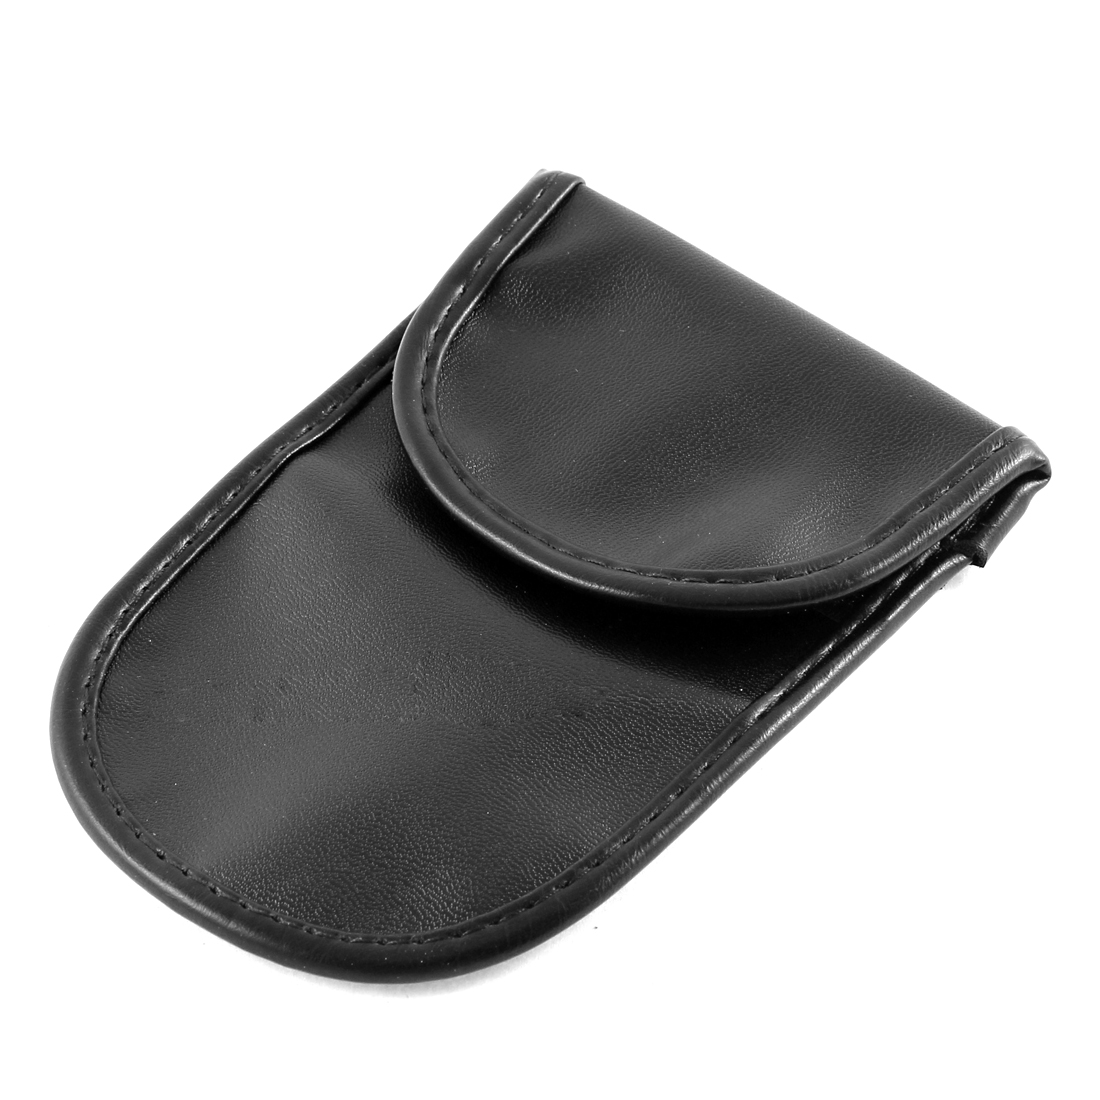 Mobile Phone Faux Leather Anti-static Bag Handset Holder Pouch Black